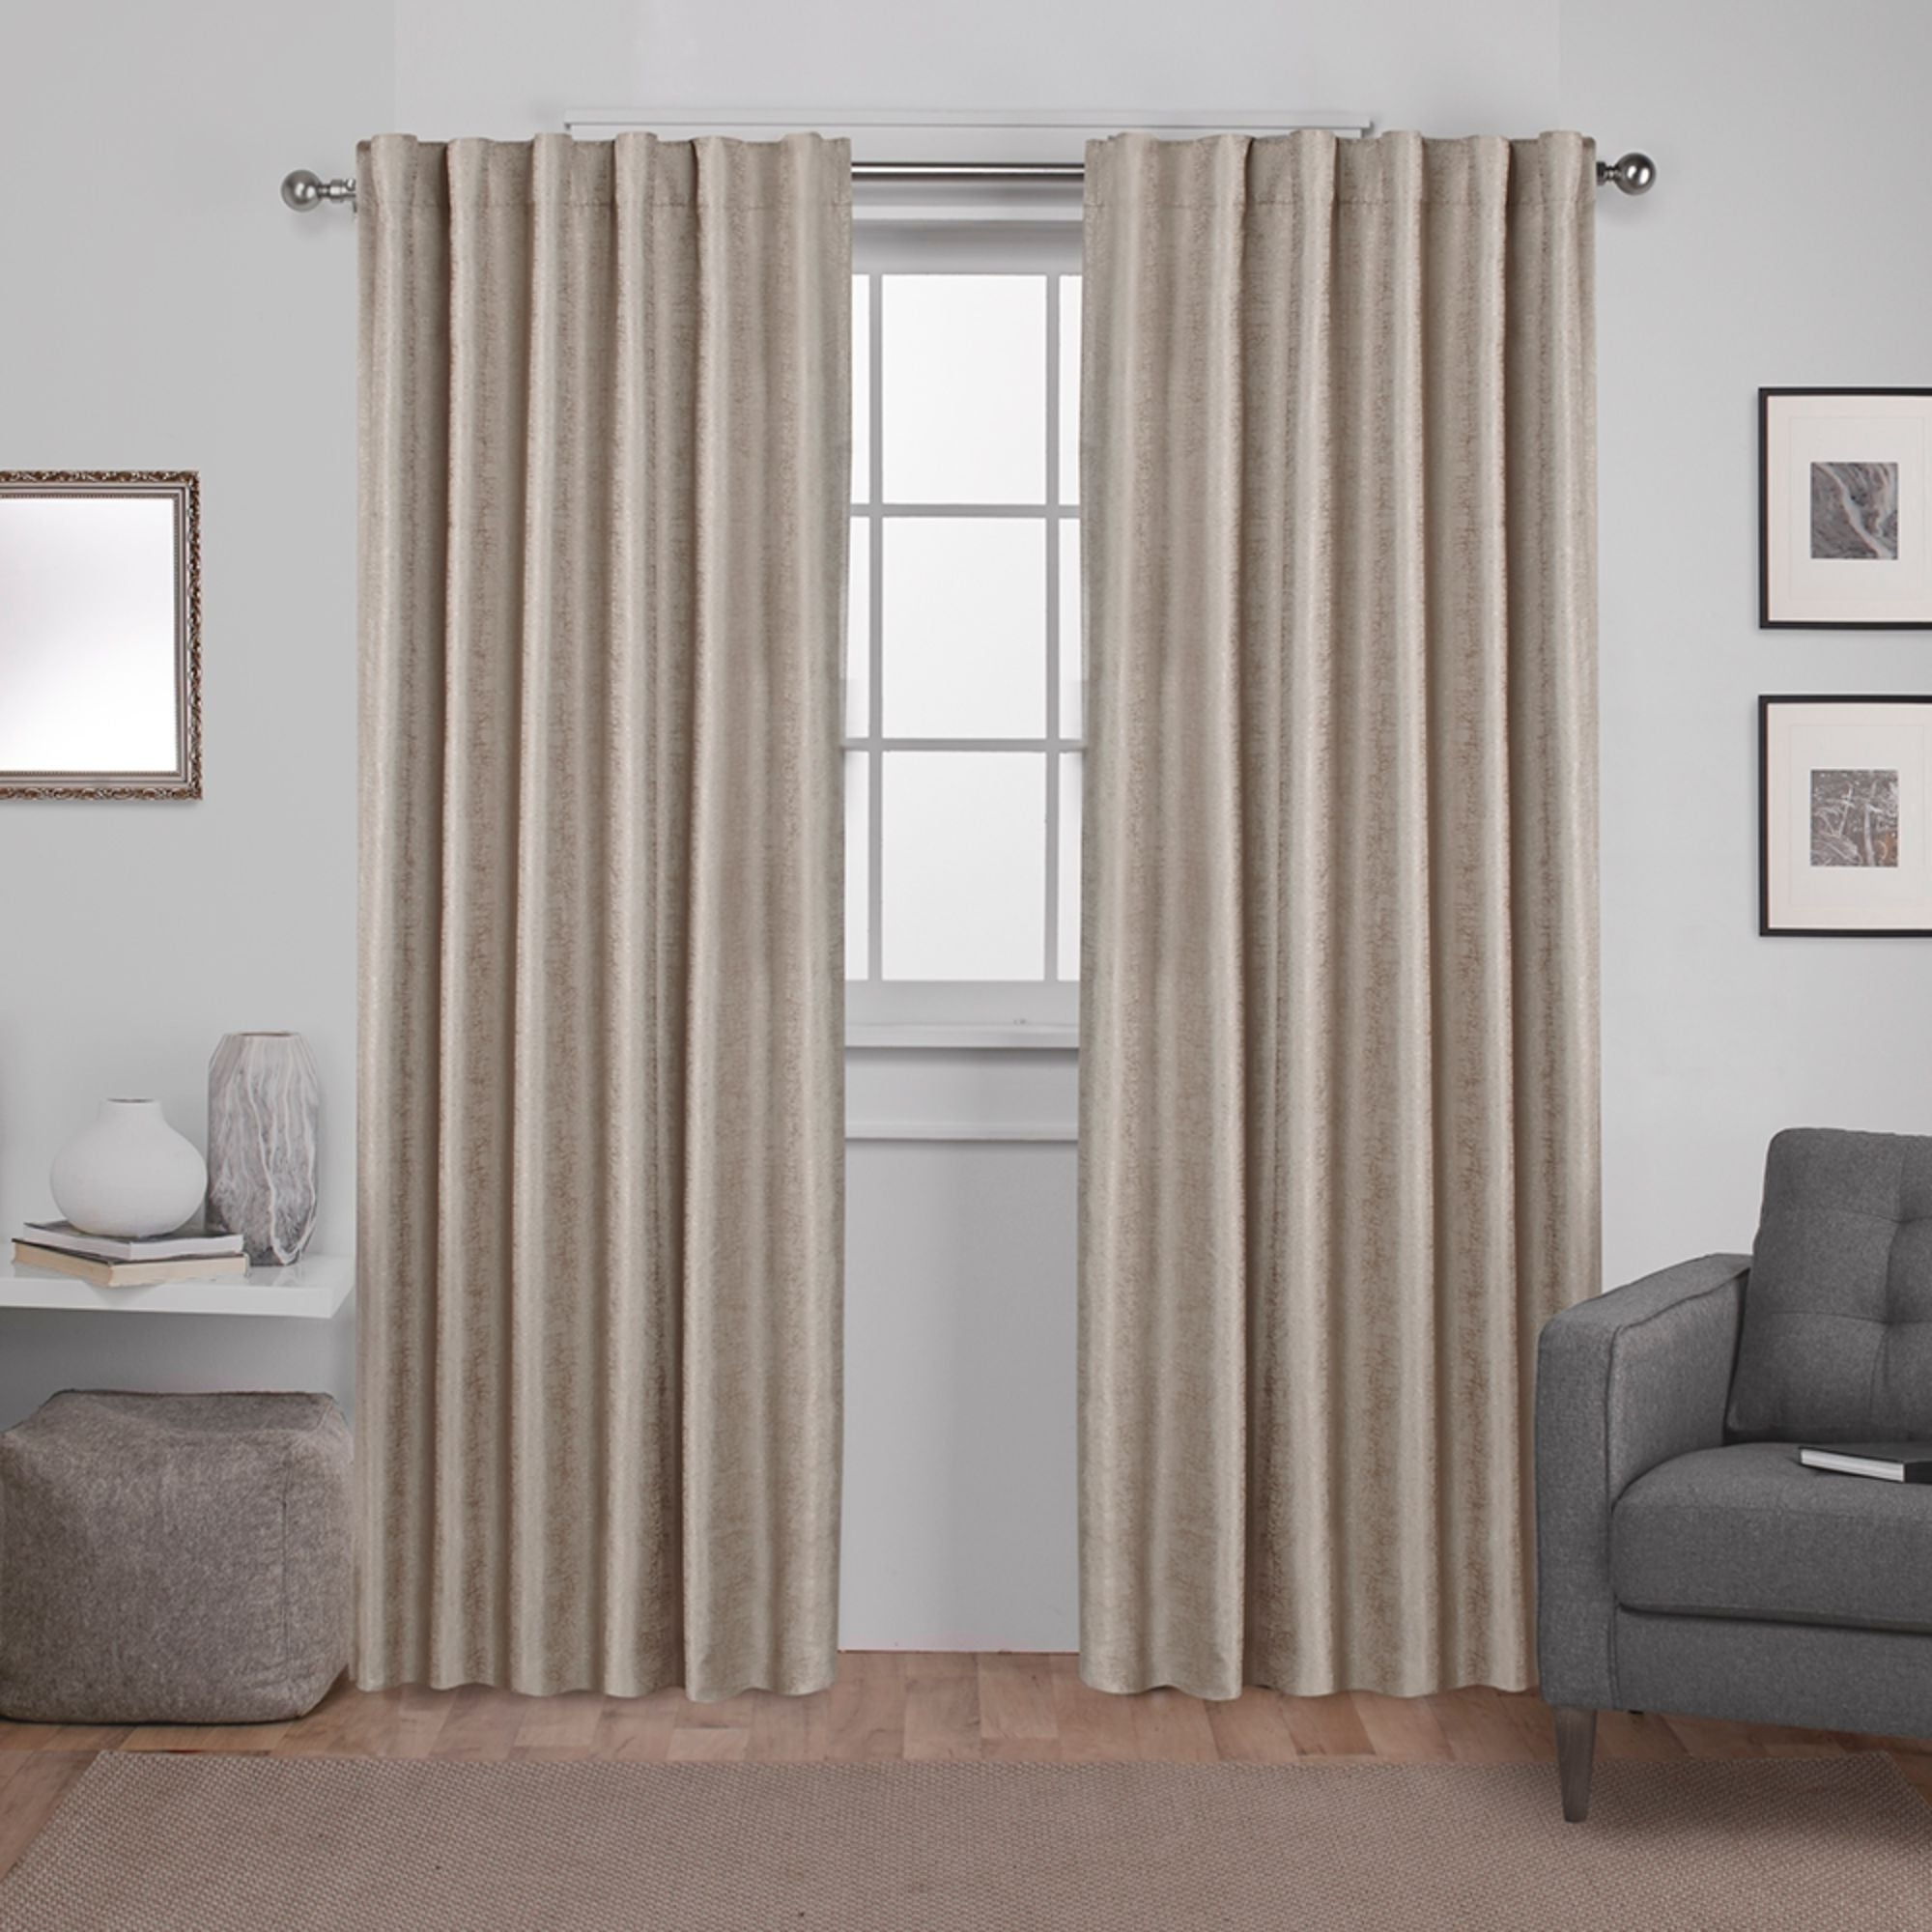 Trendy Ati Home Zeus Thermal Woven Blackout Back Tab Top Curtain Panel Pair With Cyrus Thermal Blackout Back Tab Curtain Panels (View 7 of 20)